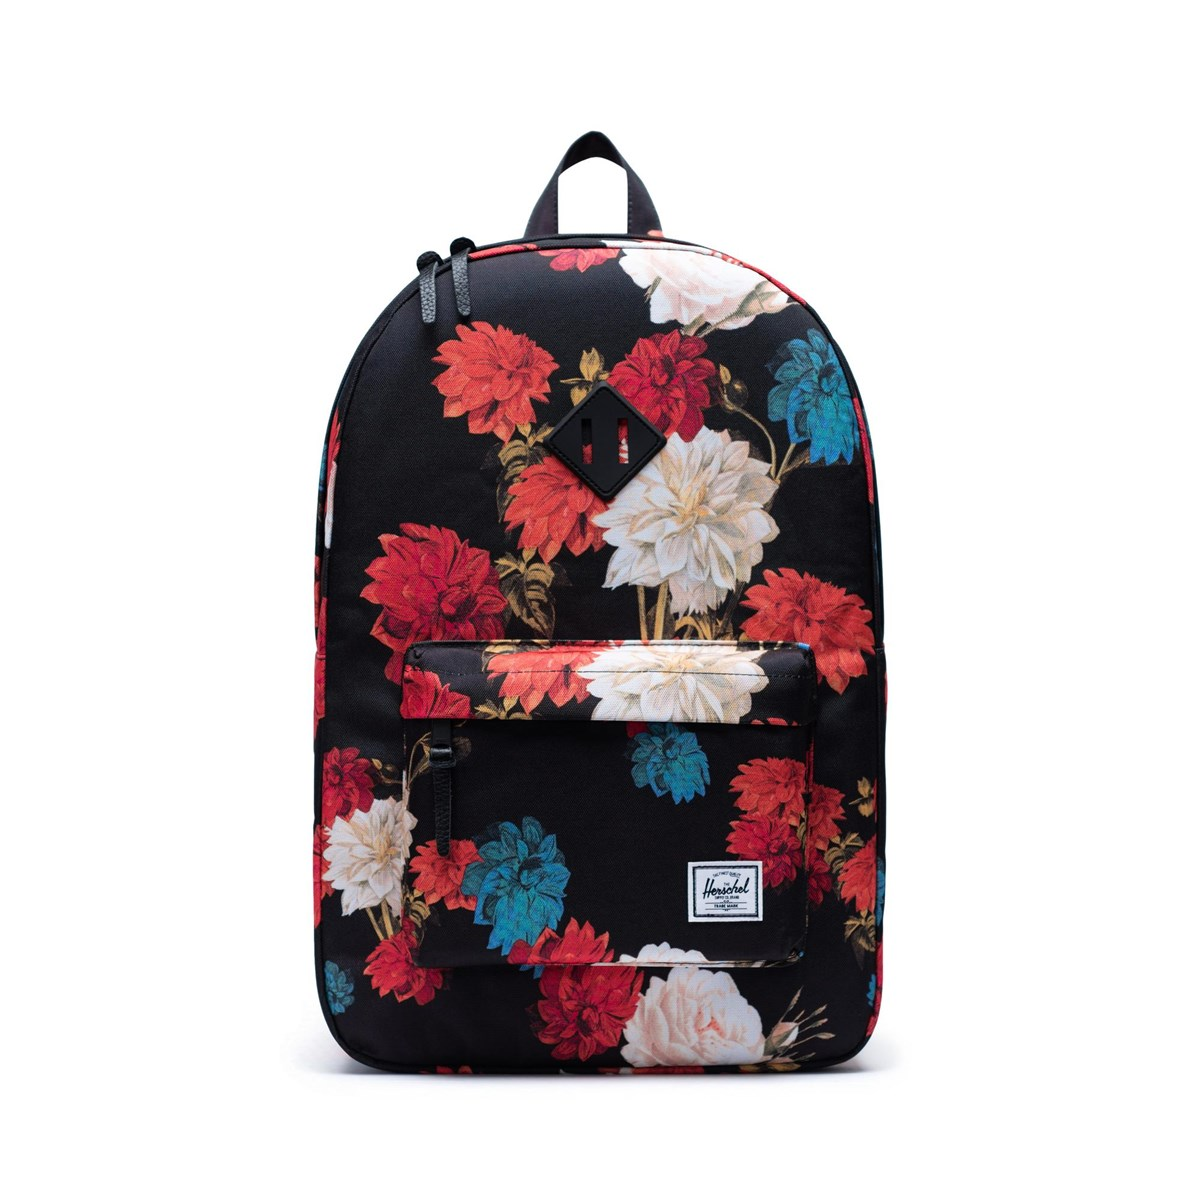 Heritage Backpack in Floral Black